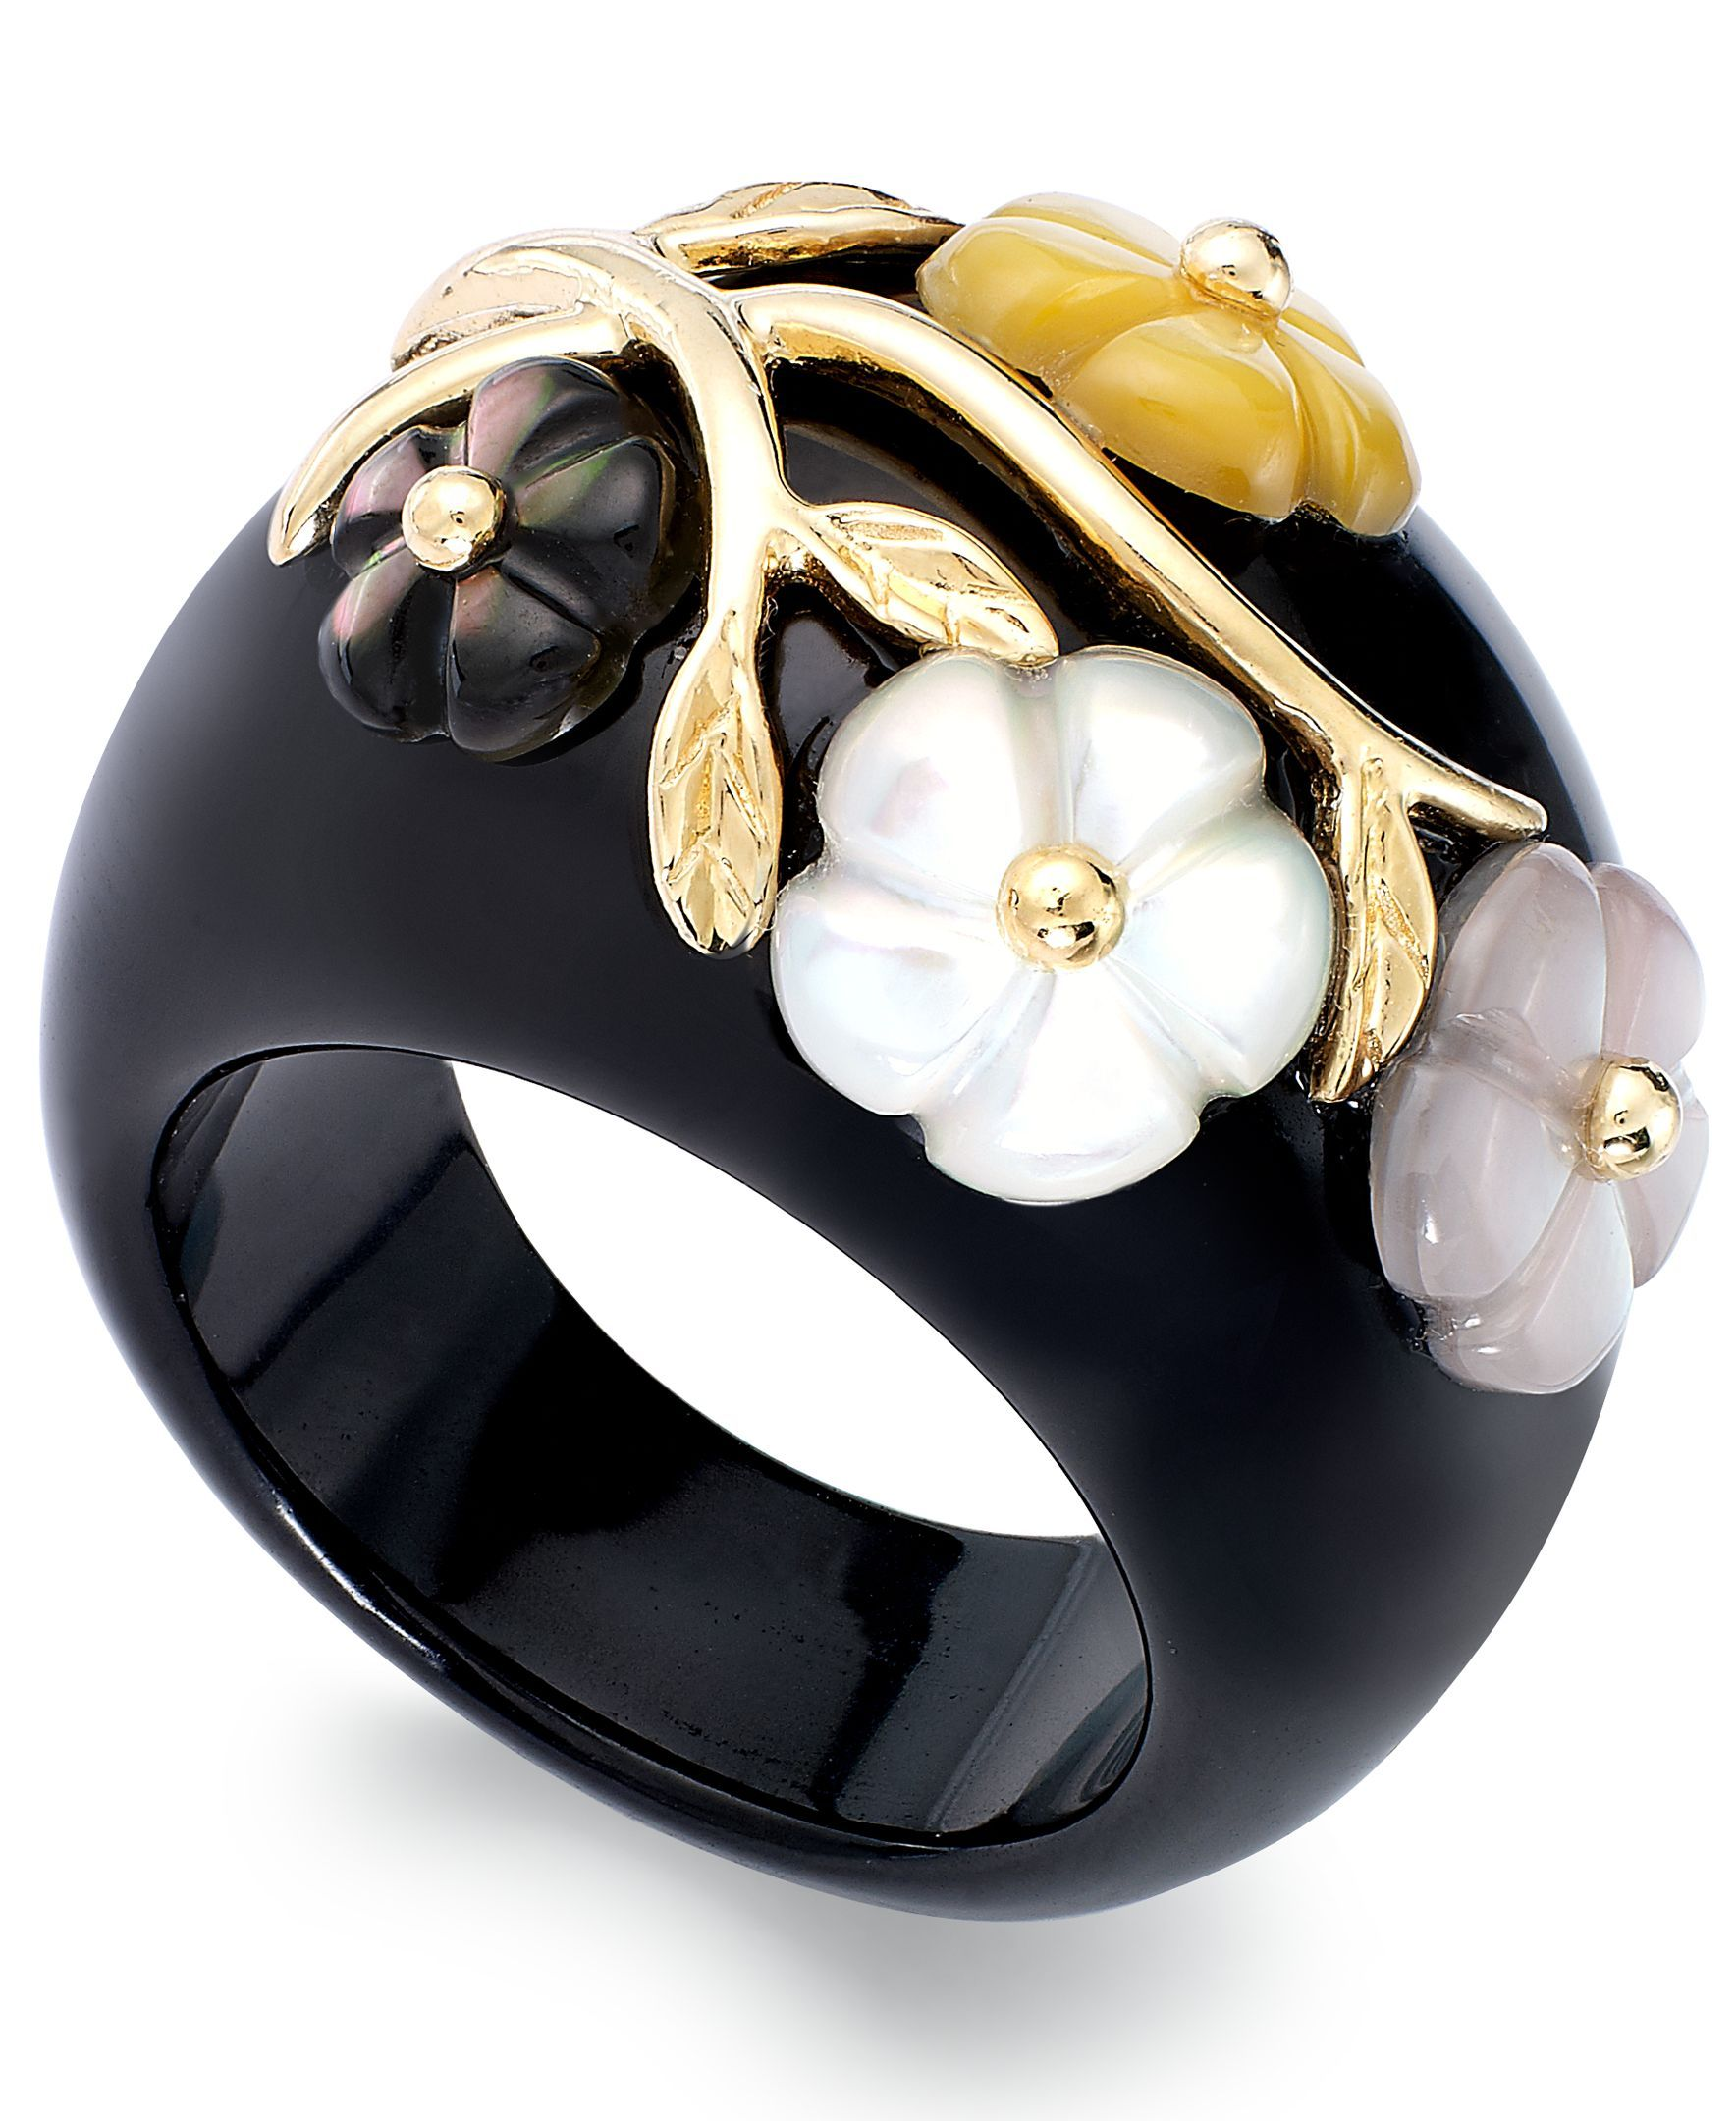 14k Gold over Sterling Silver Ring, Onyx (6mm) and Mother of Pearl (24mm) Flower Ring